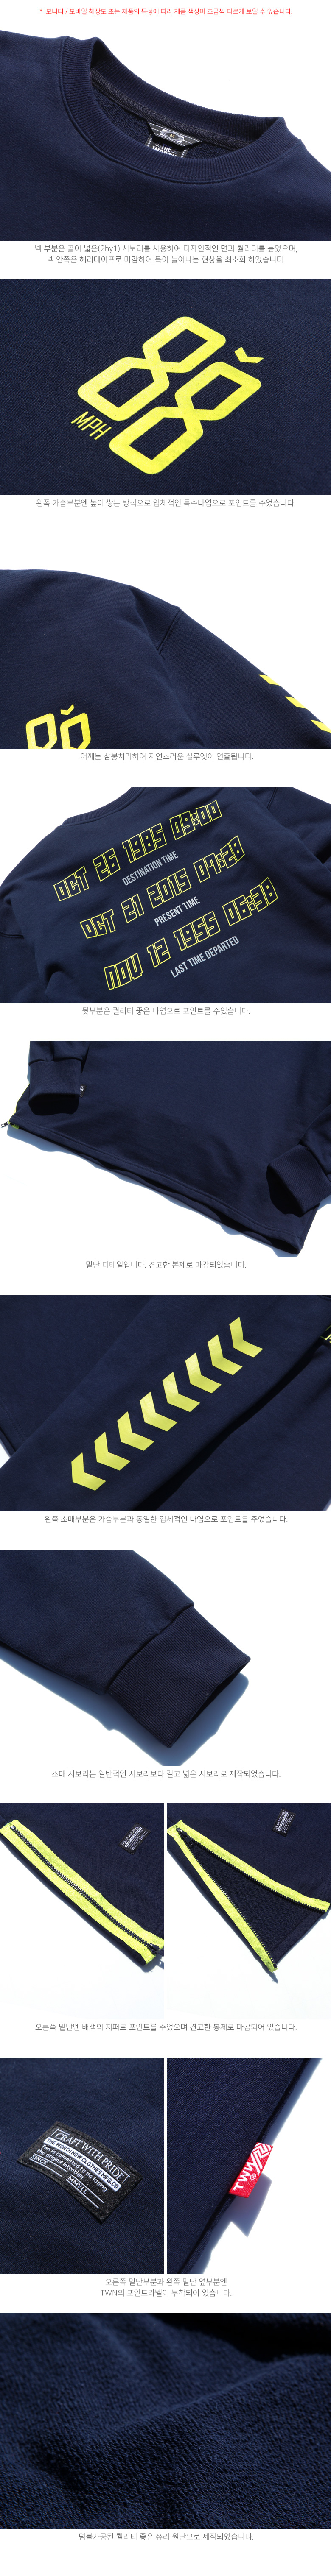 20180918_twn_eightzipper_detail_navy_ym_02.jpg